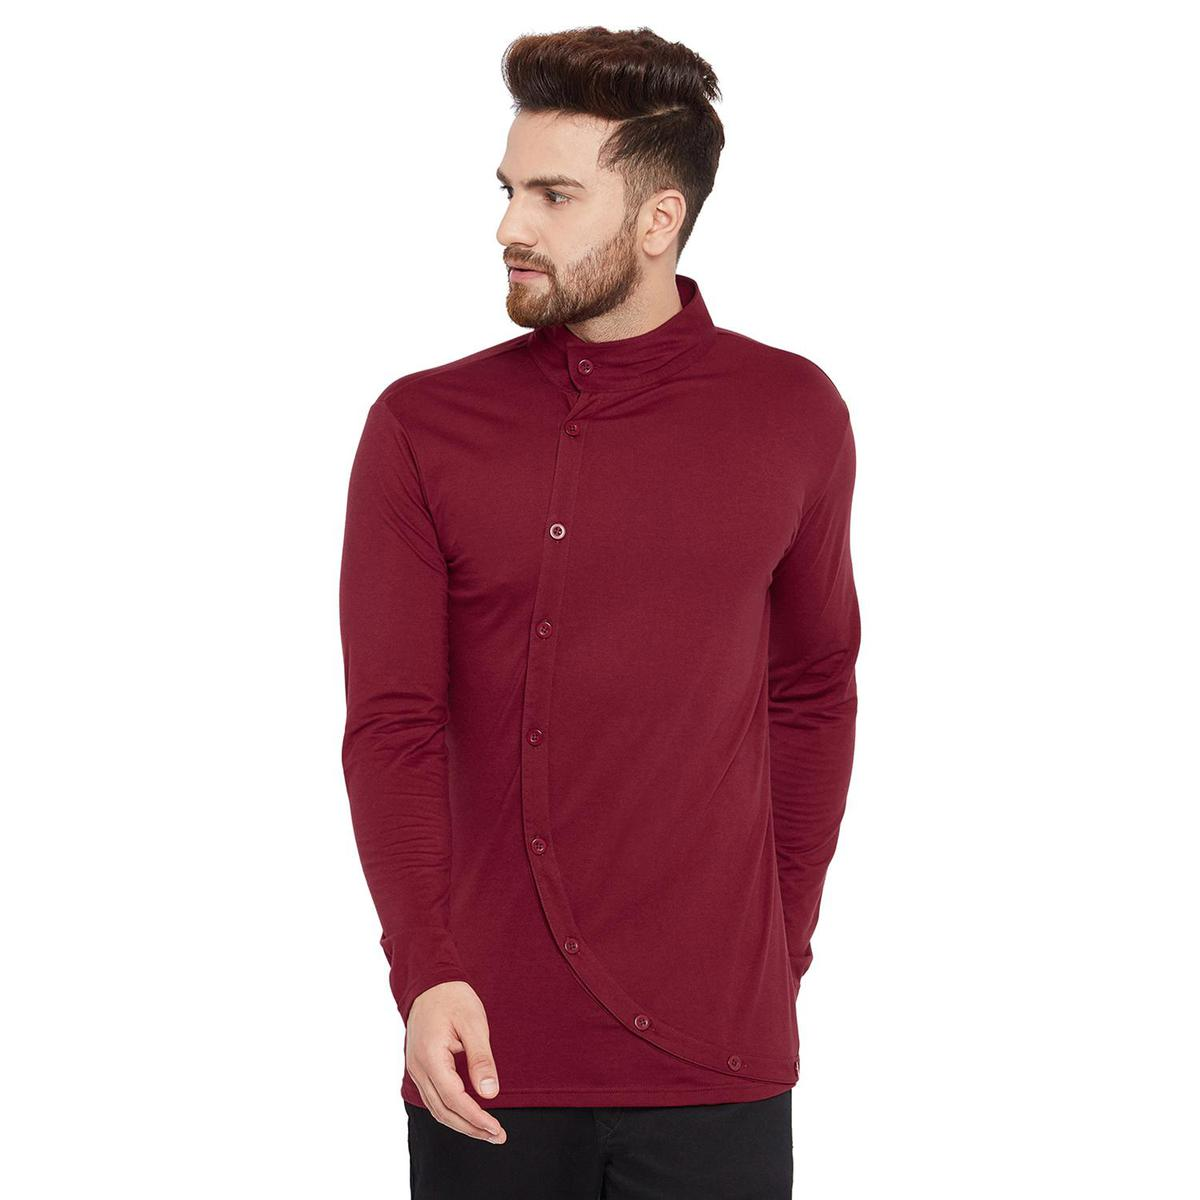 Chill Winston - Maroon Colored Asymmetrical Long Sleeve Button Down T-Shirt